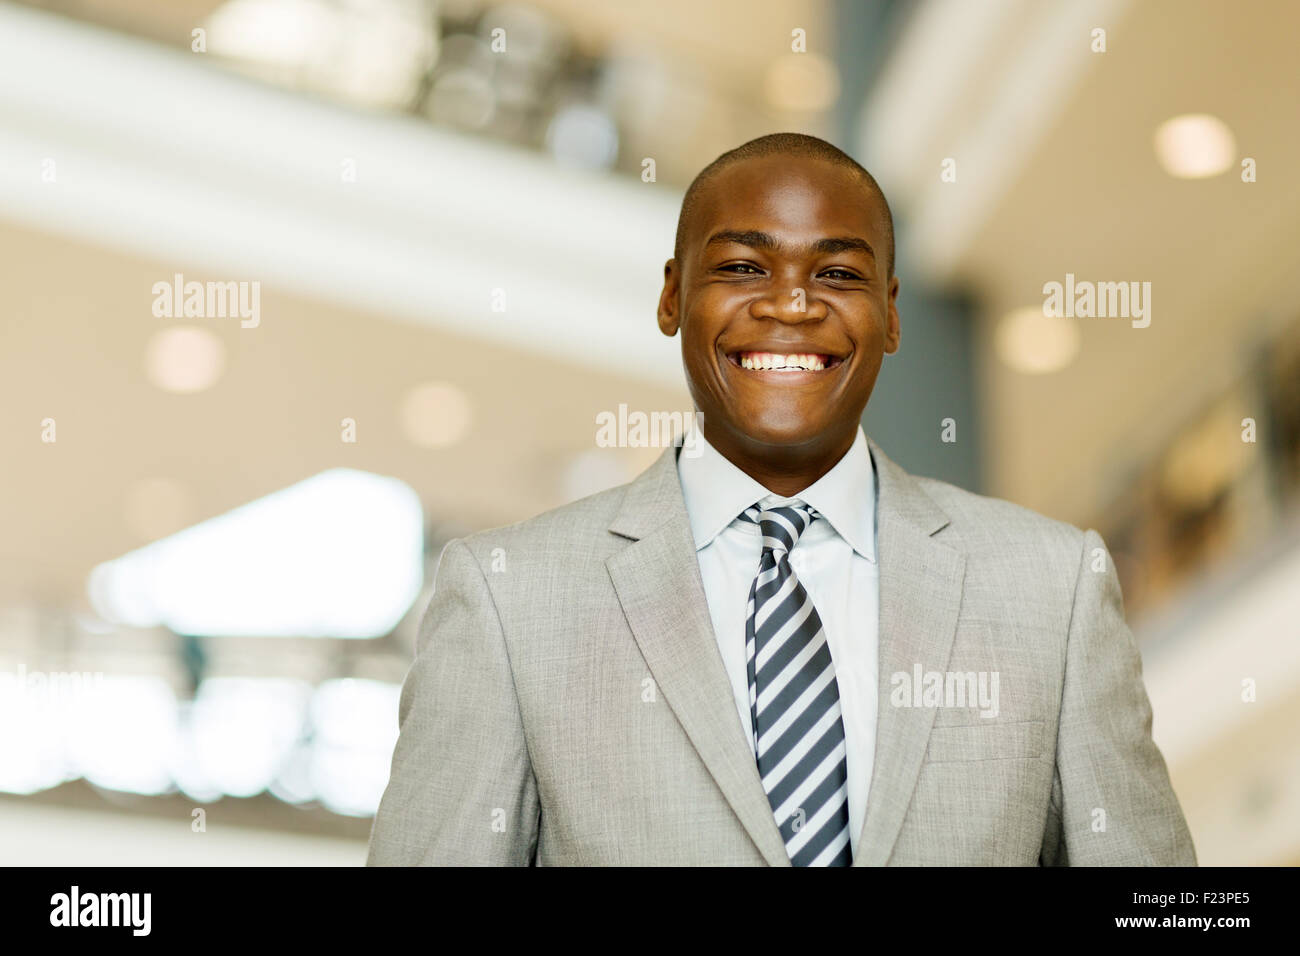 Portrait of smiling African business man in modern office Banque D'Images